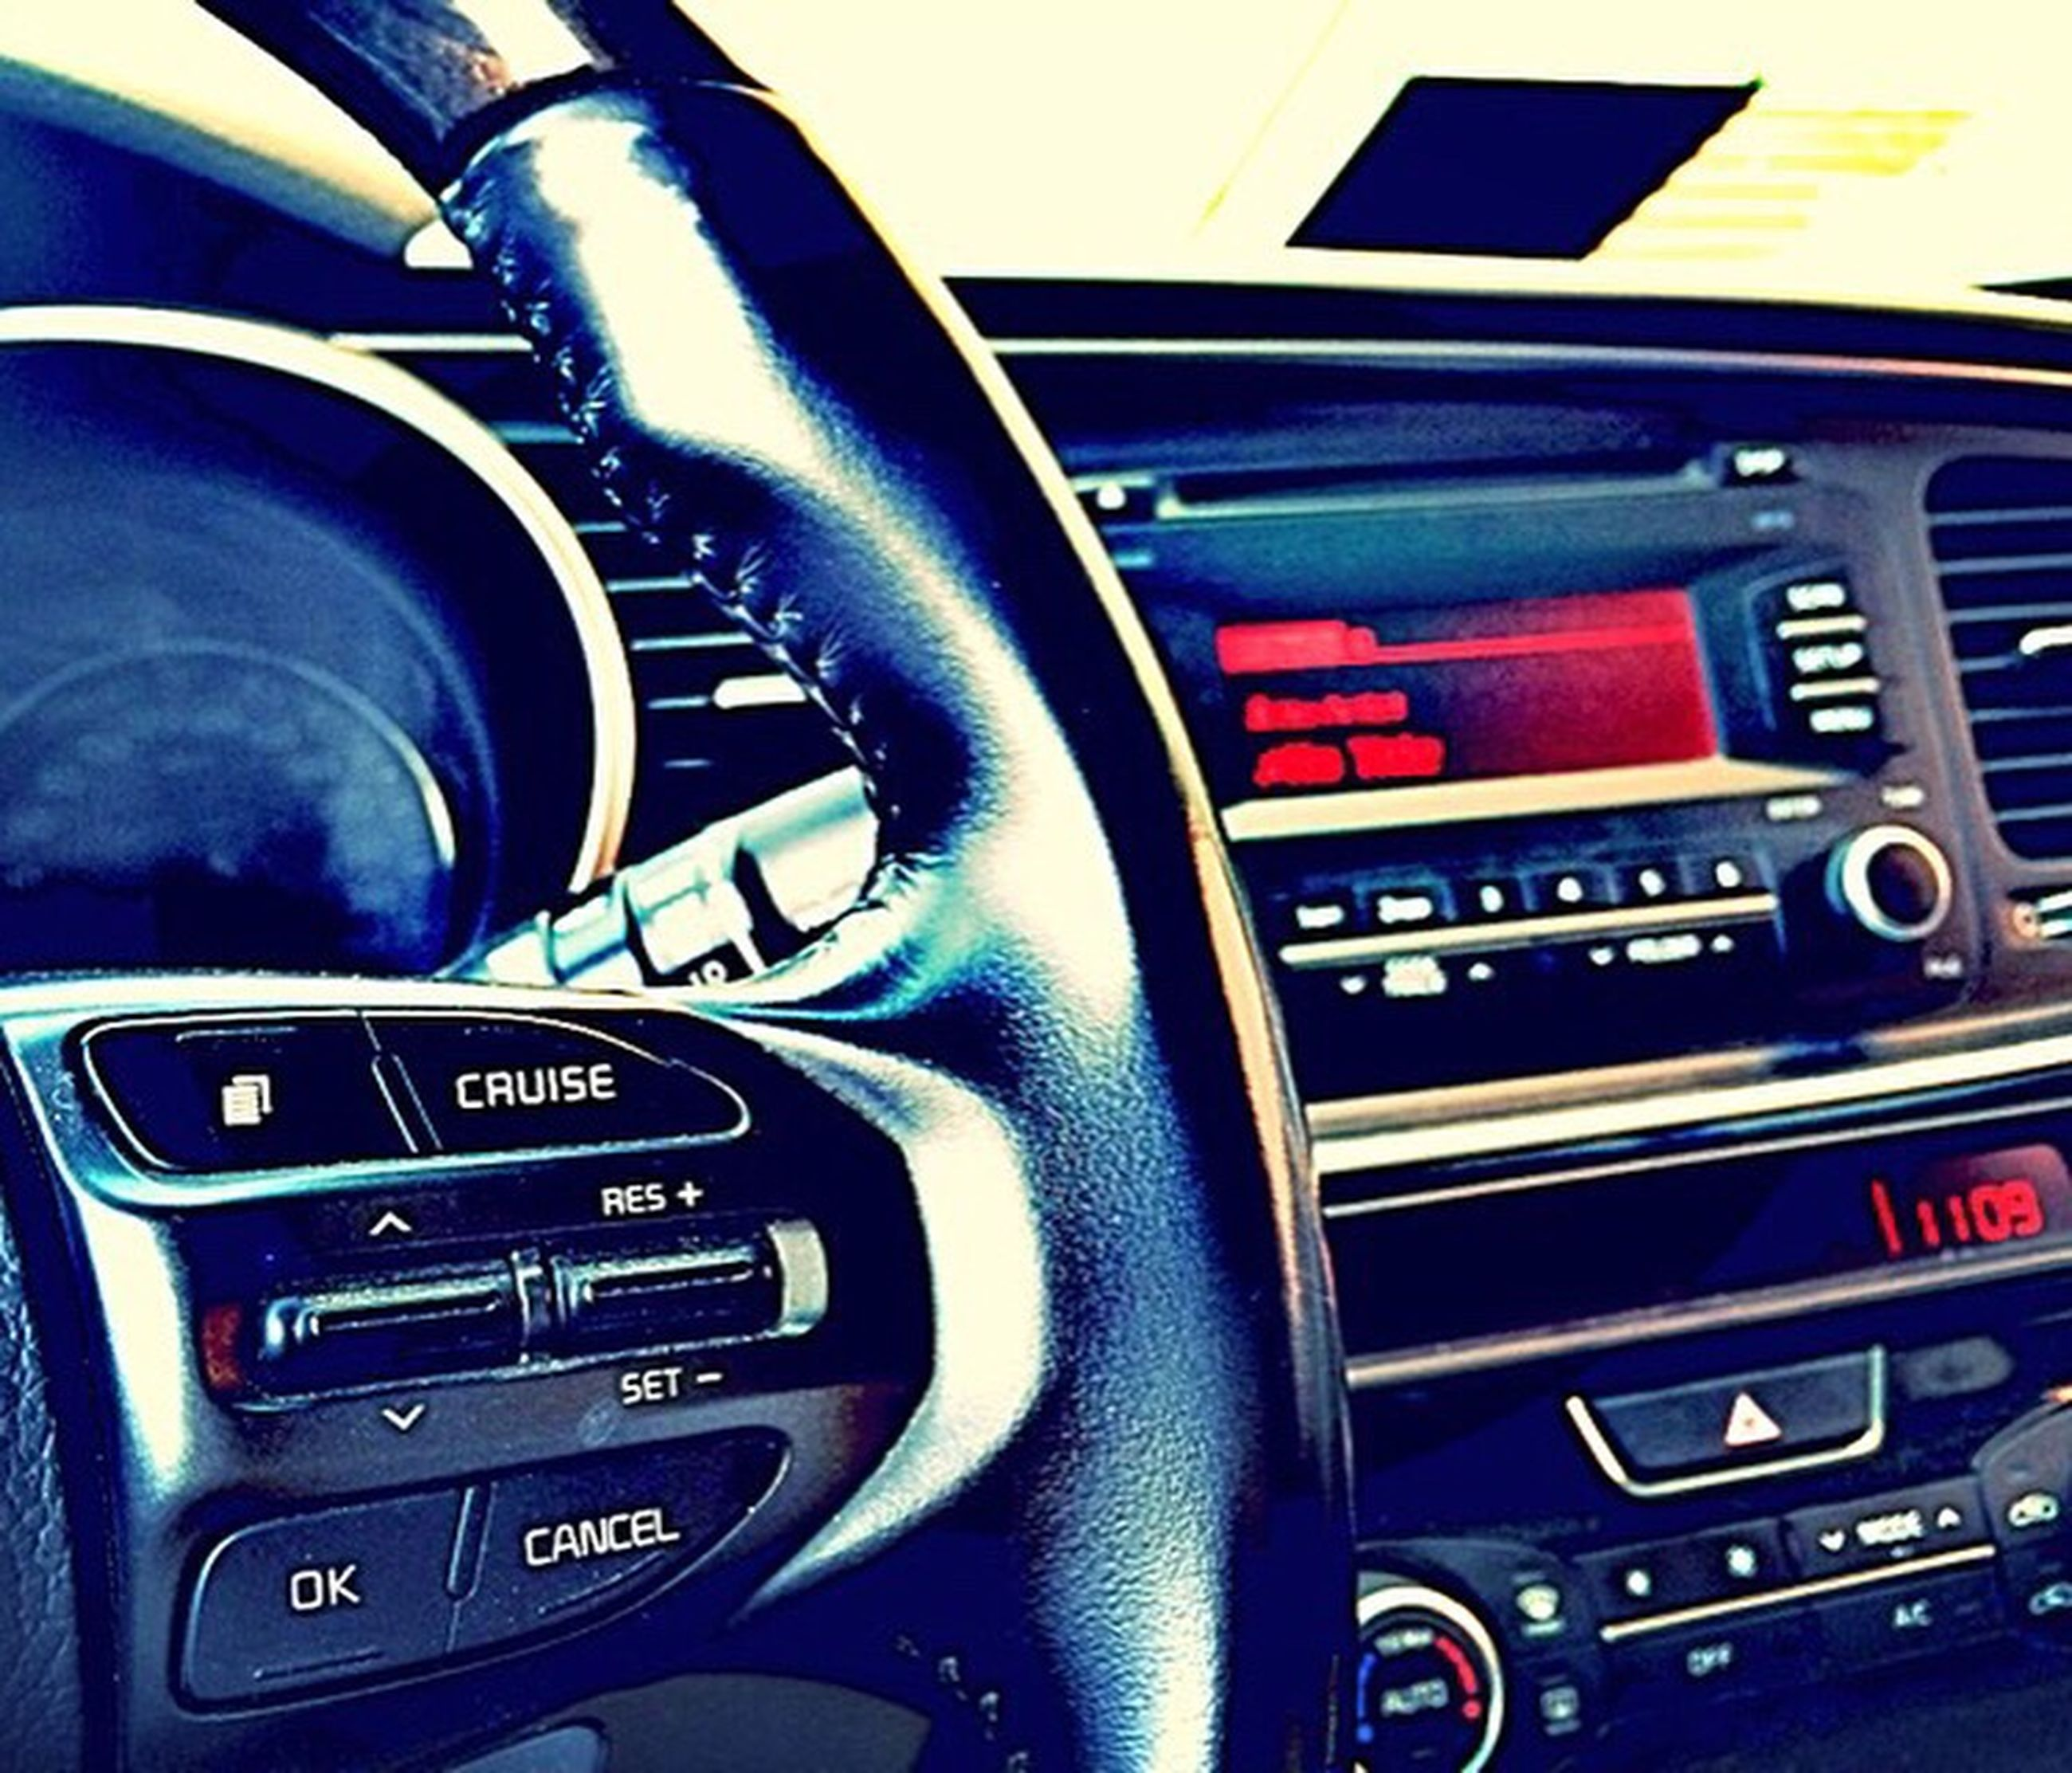 transportation, car, land vehicle, mode of transport, technology, car interior, close-up, vehicle interior, dashboard, speedometer, indoors, part of, number, connection, communication, travel, control, control panel, old-fashioned, full frame